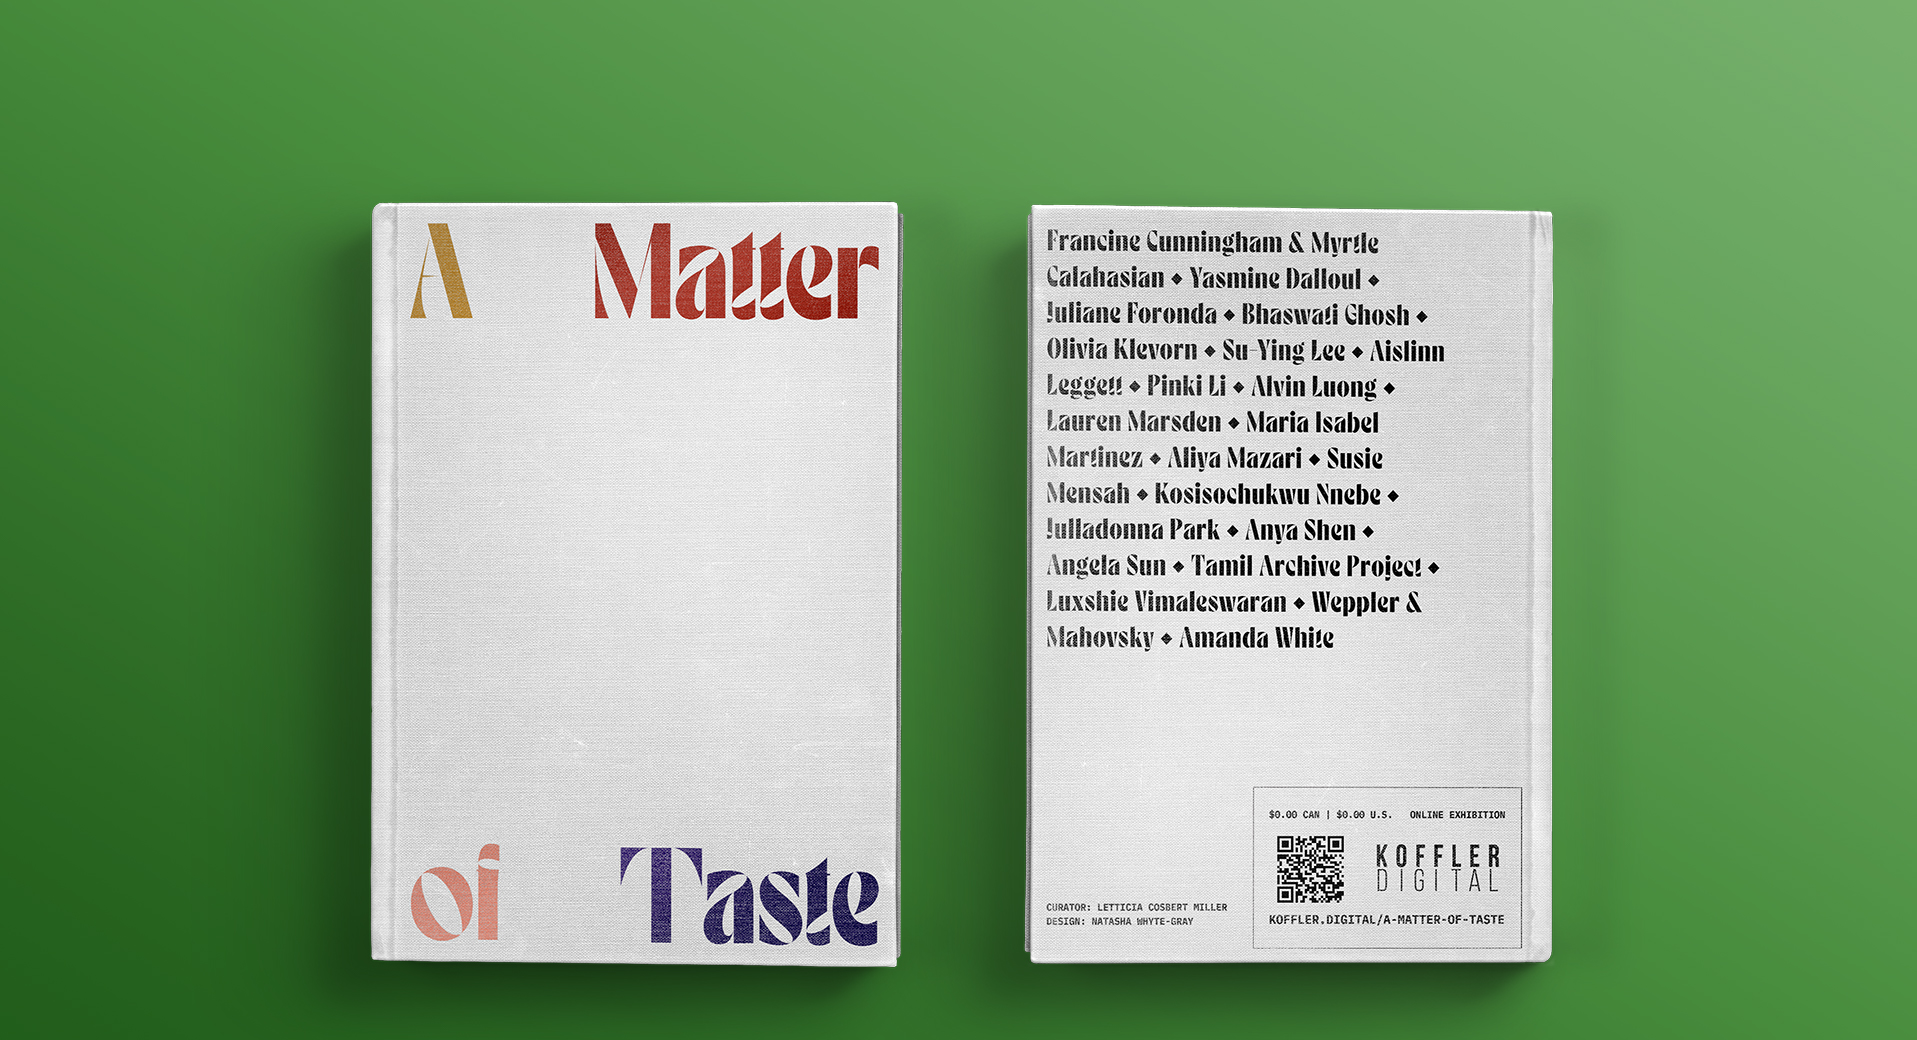 A Matter of Taste: Koffler.Digital's Summer 2020 Exhibition on the politics of food